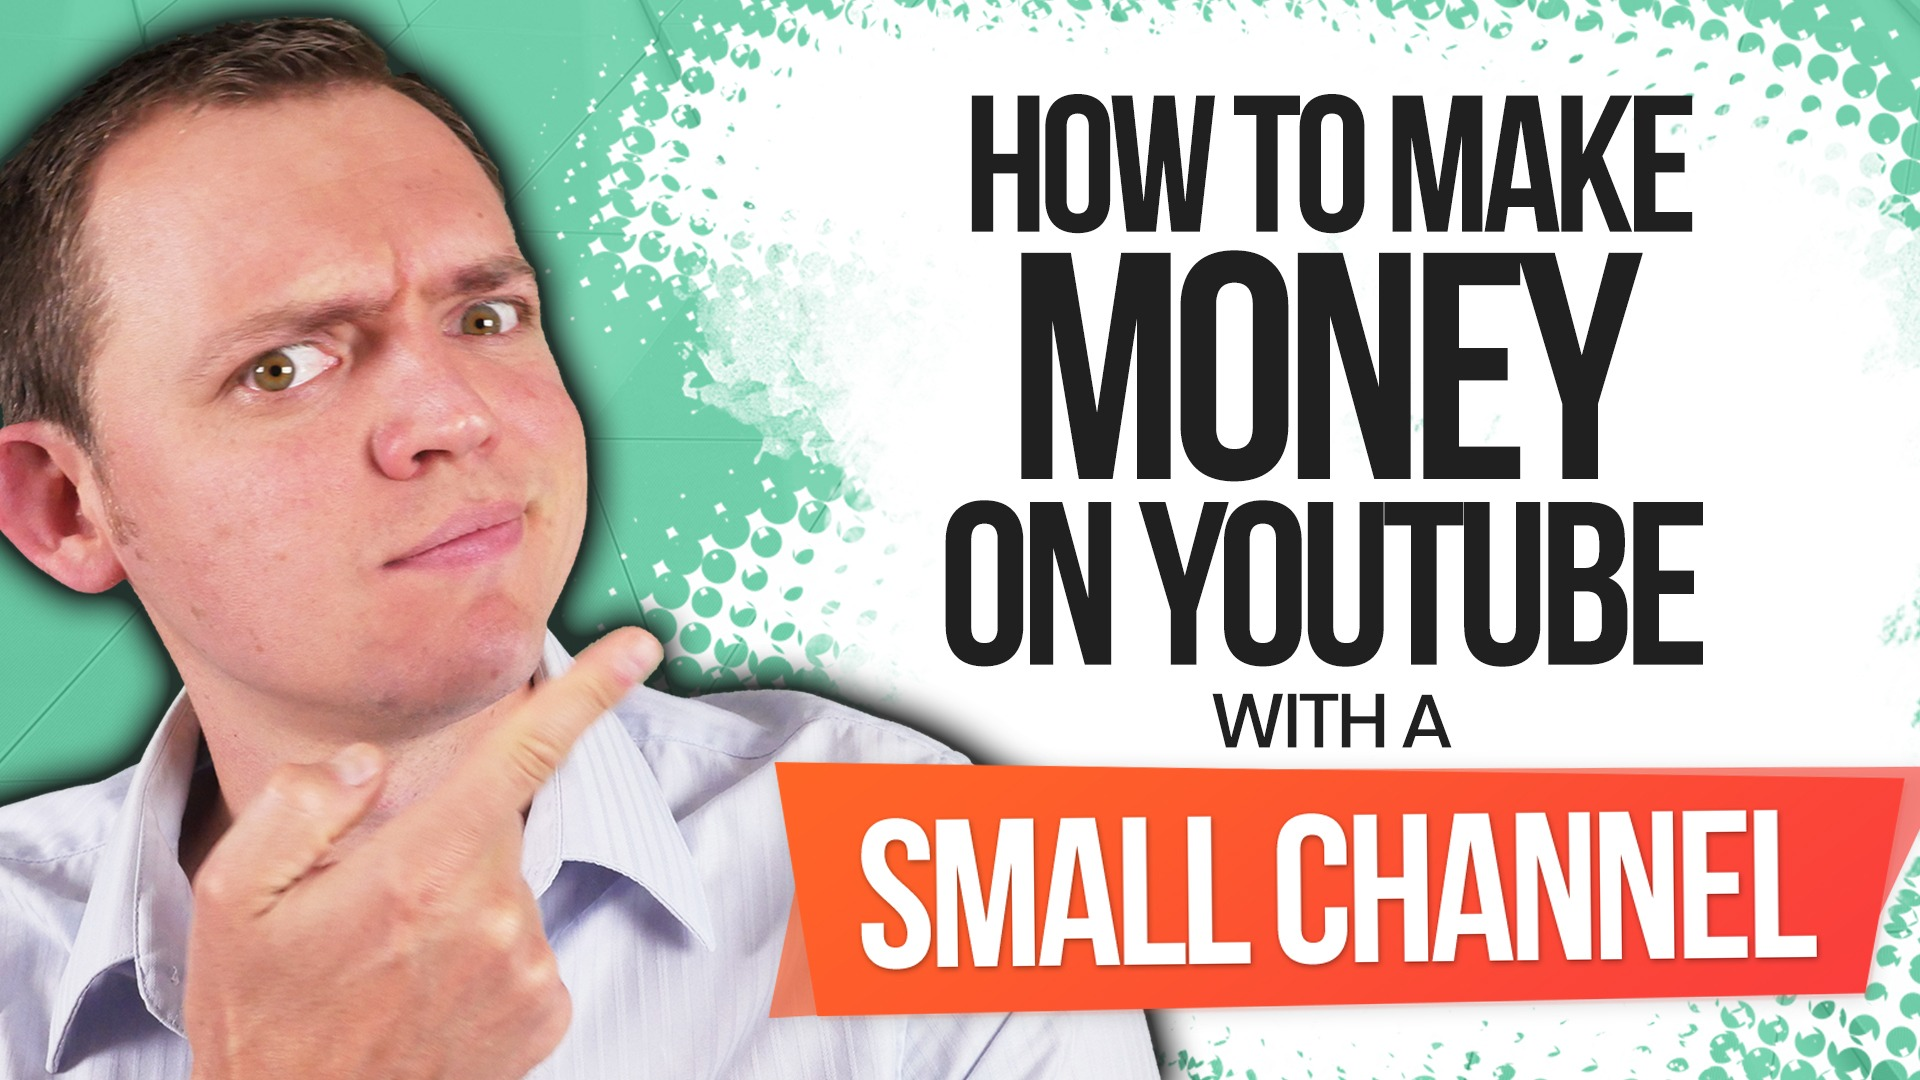 How to Make More Money on YouTube When You Have a Small Channel